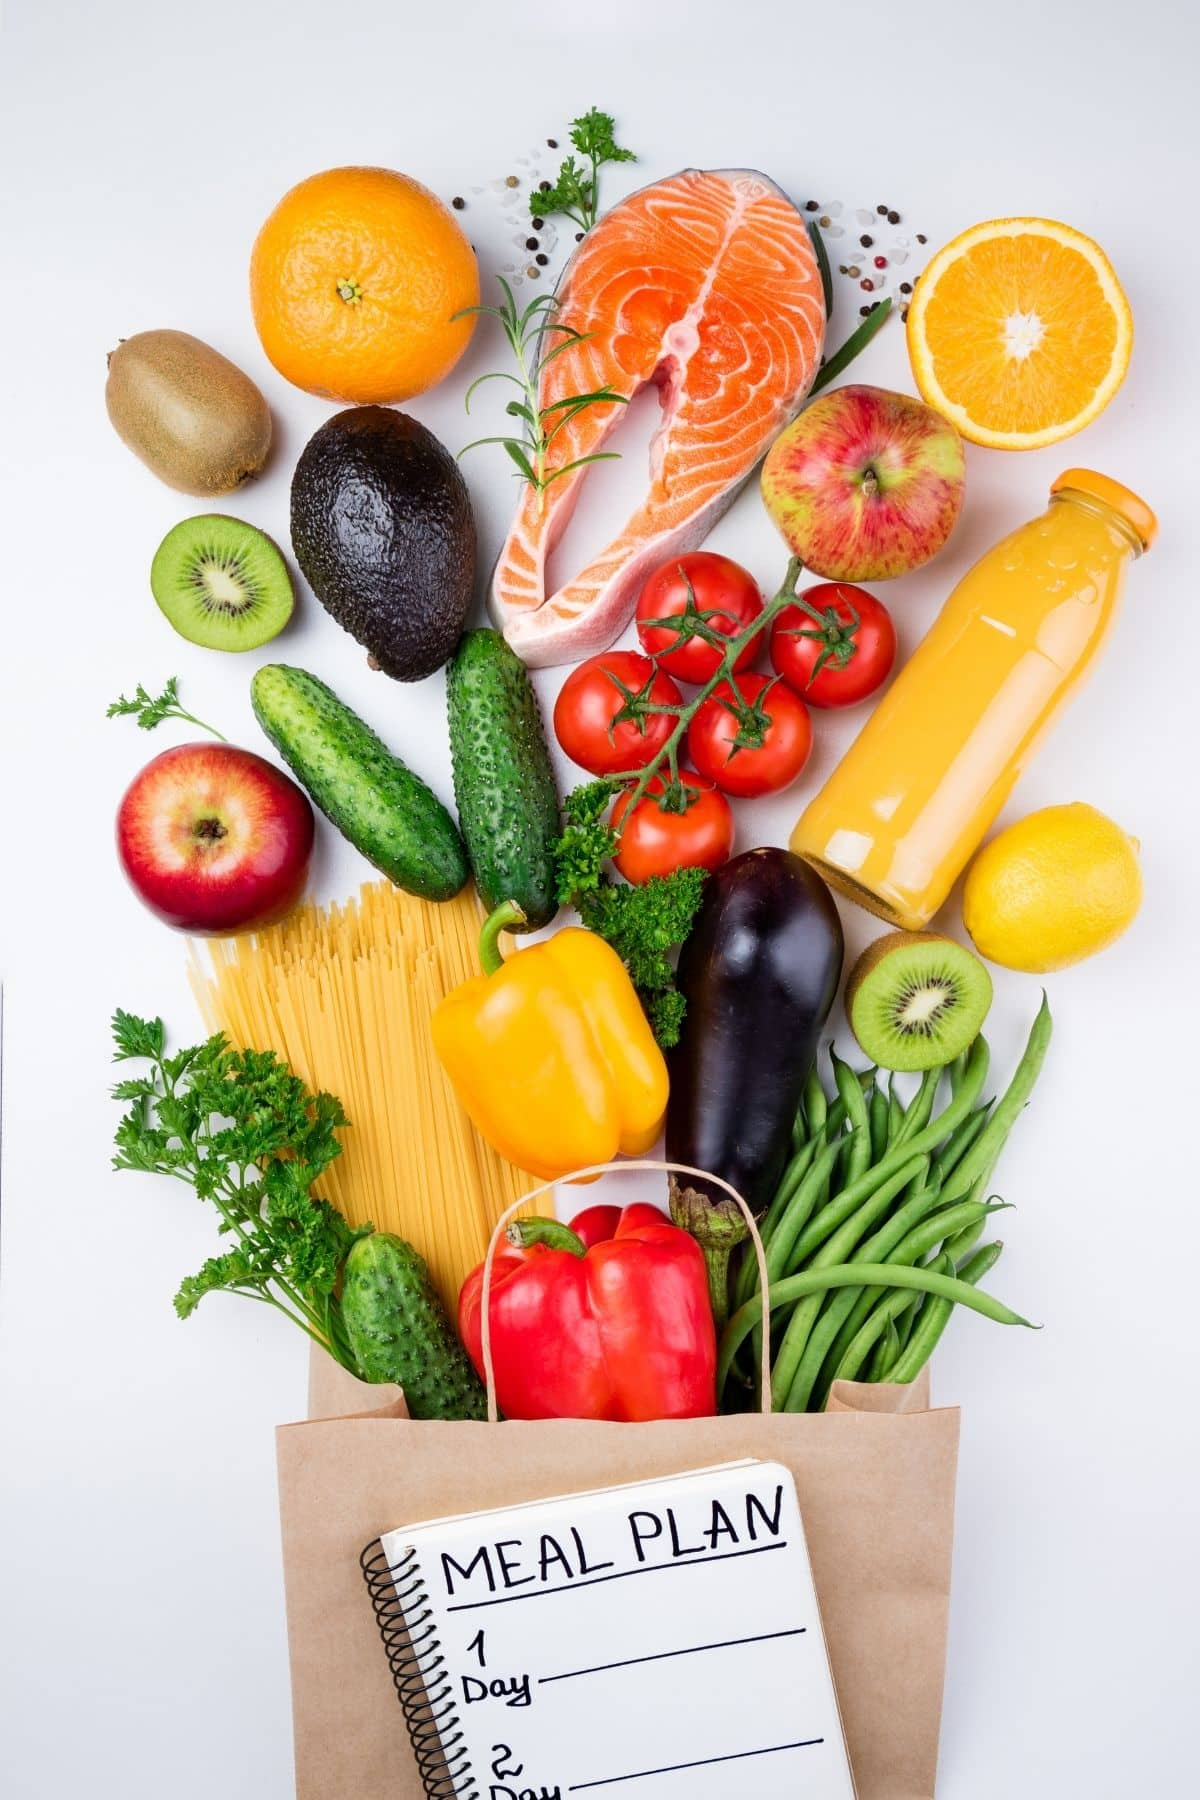 Fresh fruits and vegetables for a meal plan